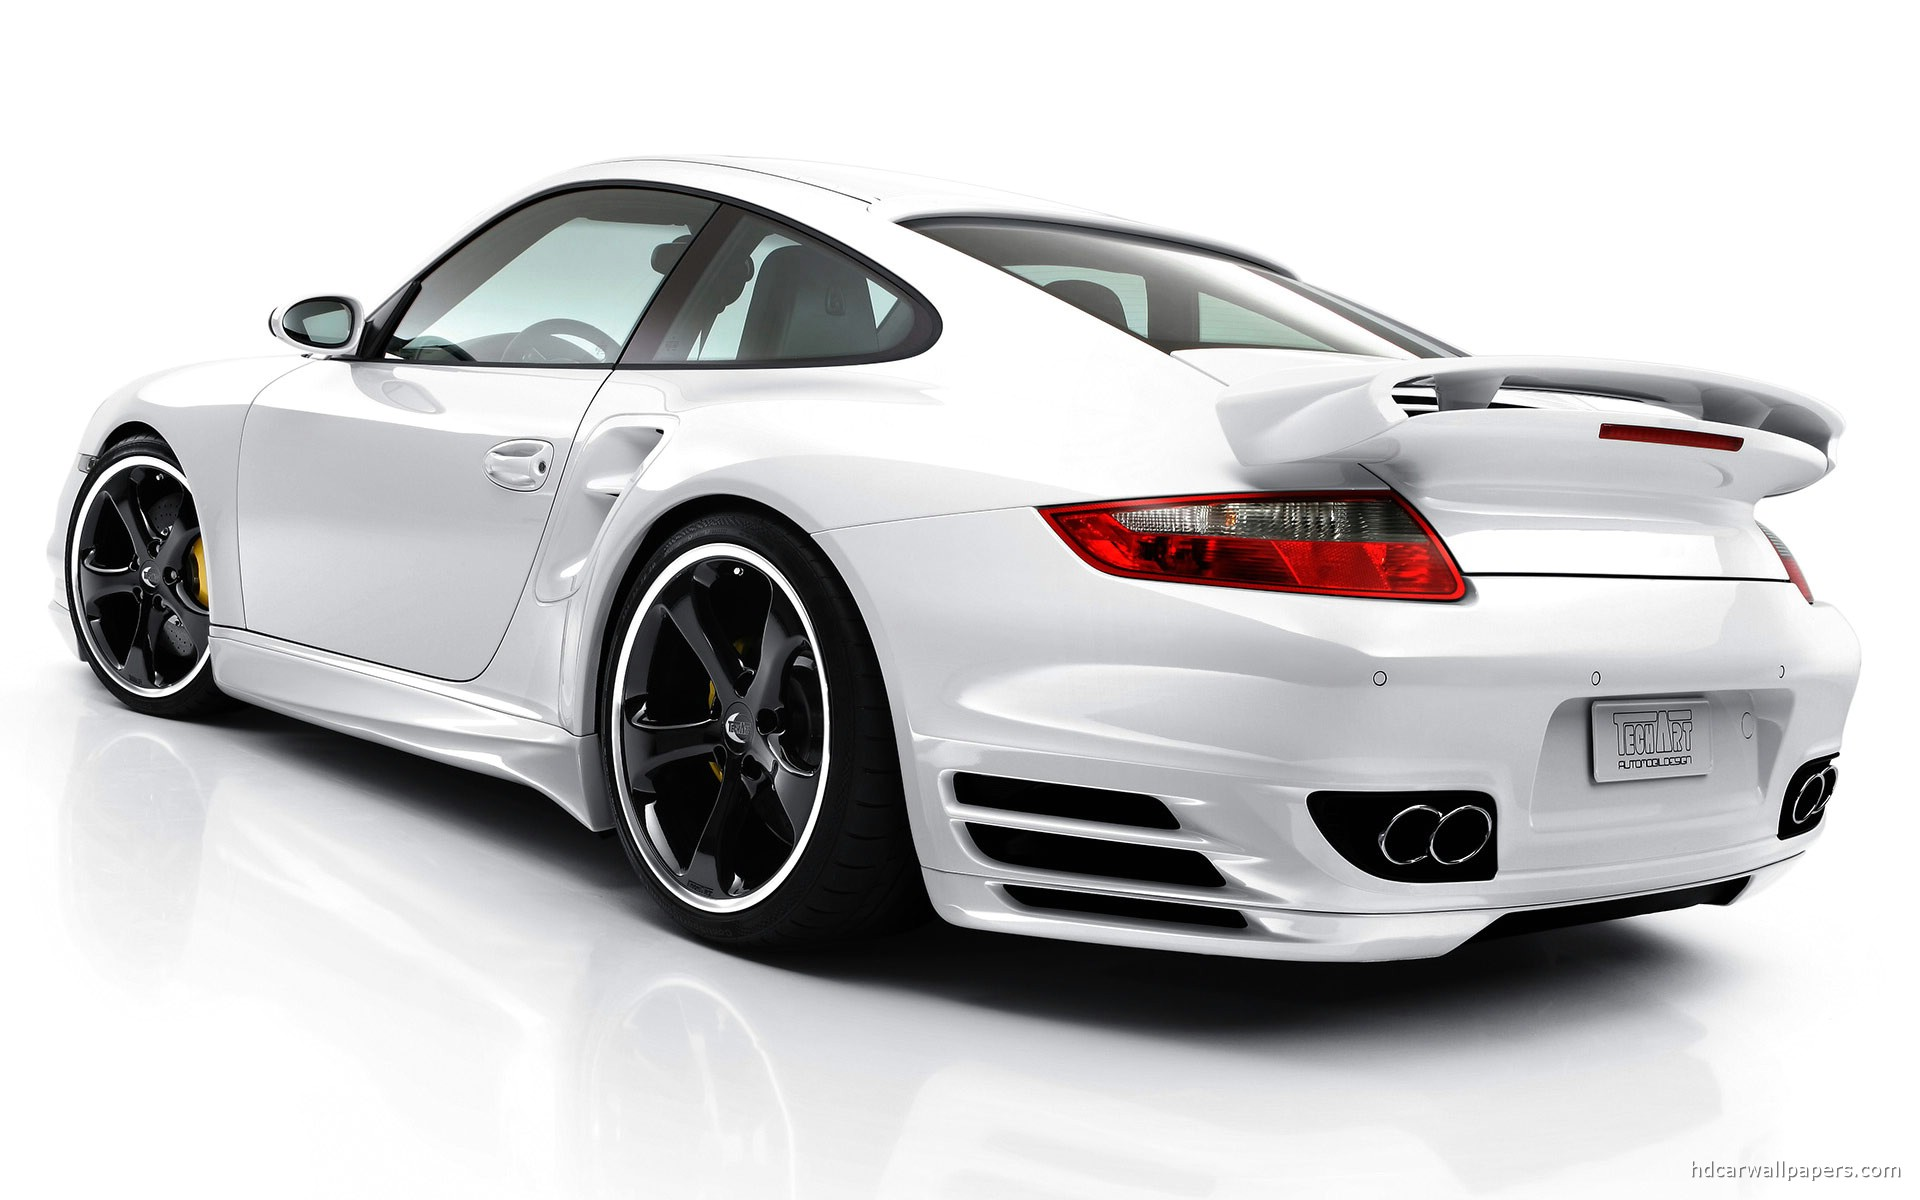 porsche 911 wallpapers hd wallpapers - Porsche 911 Wallpaper Widescreen